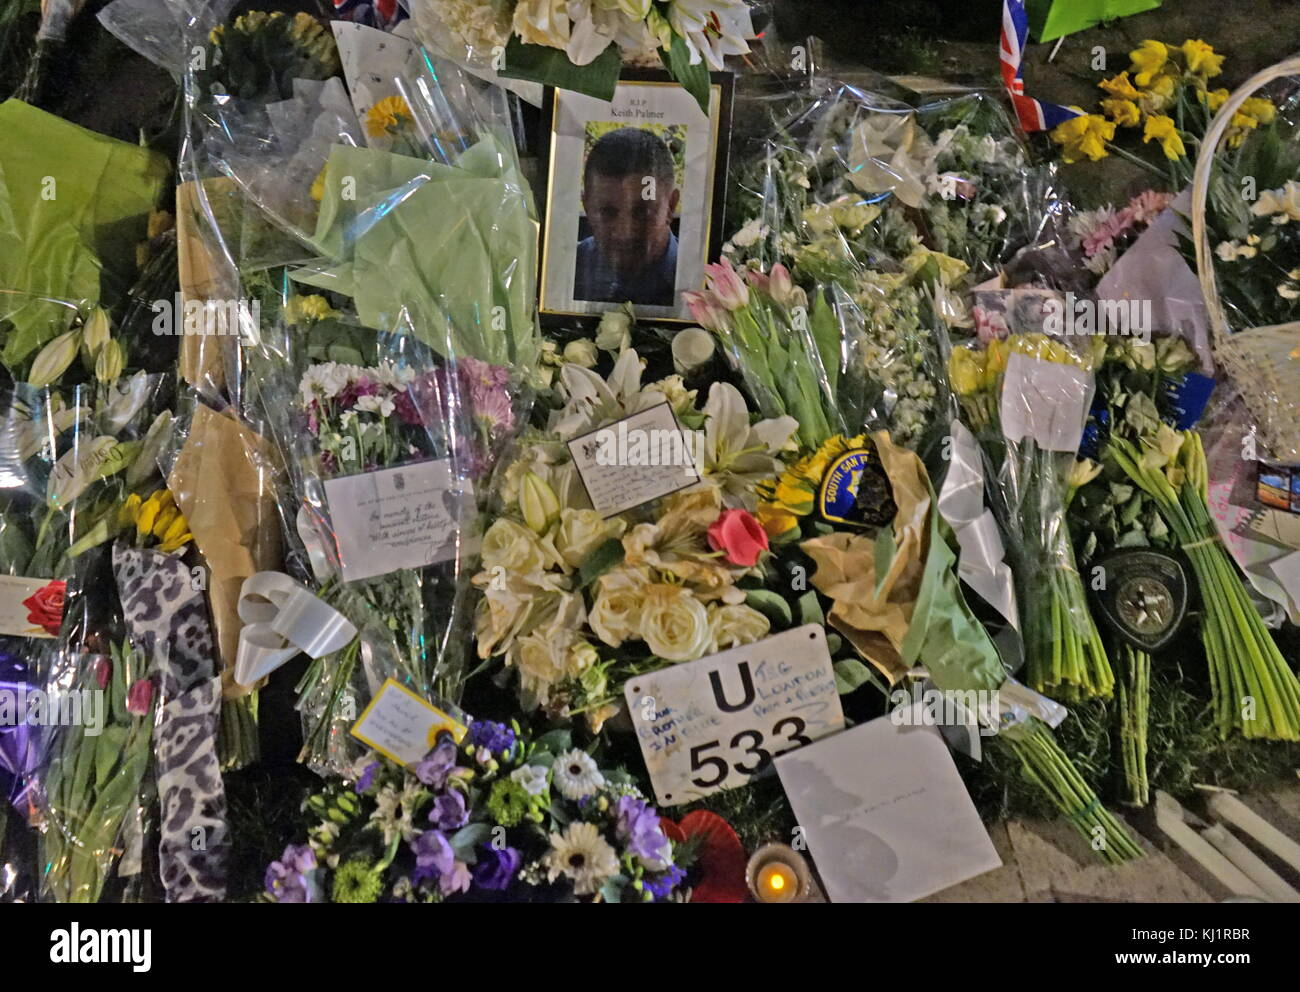 Flowers and tributes decorate a portrait of the murdered Police officer, PC Keith Palmer,, at Parliament green opposite - Stock Image